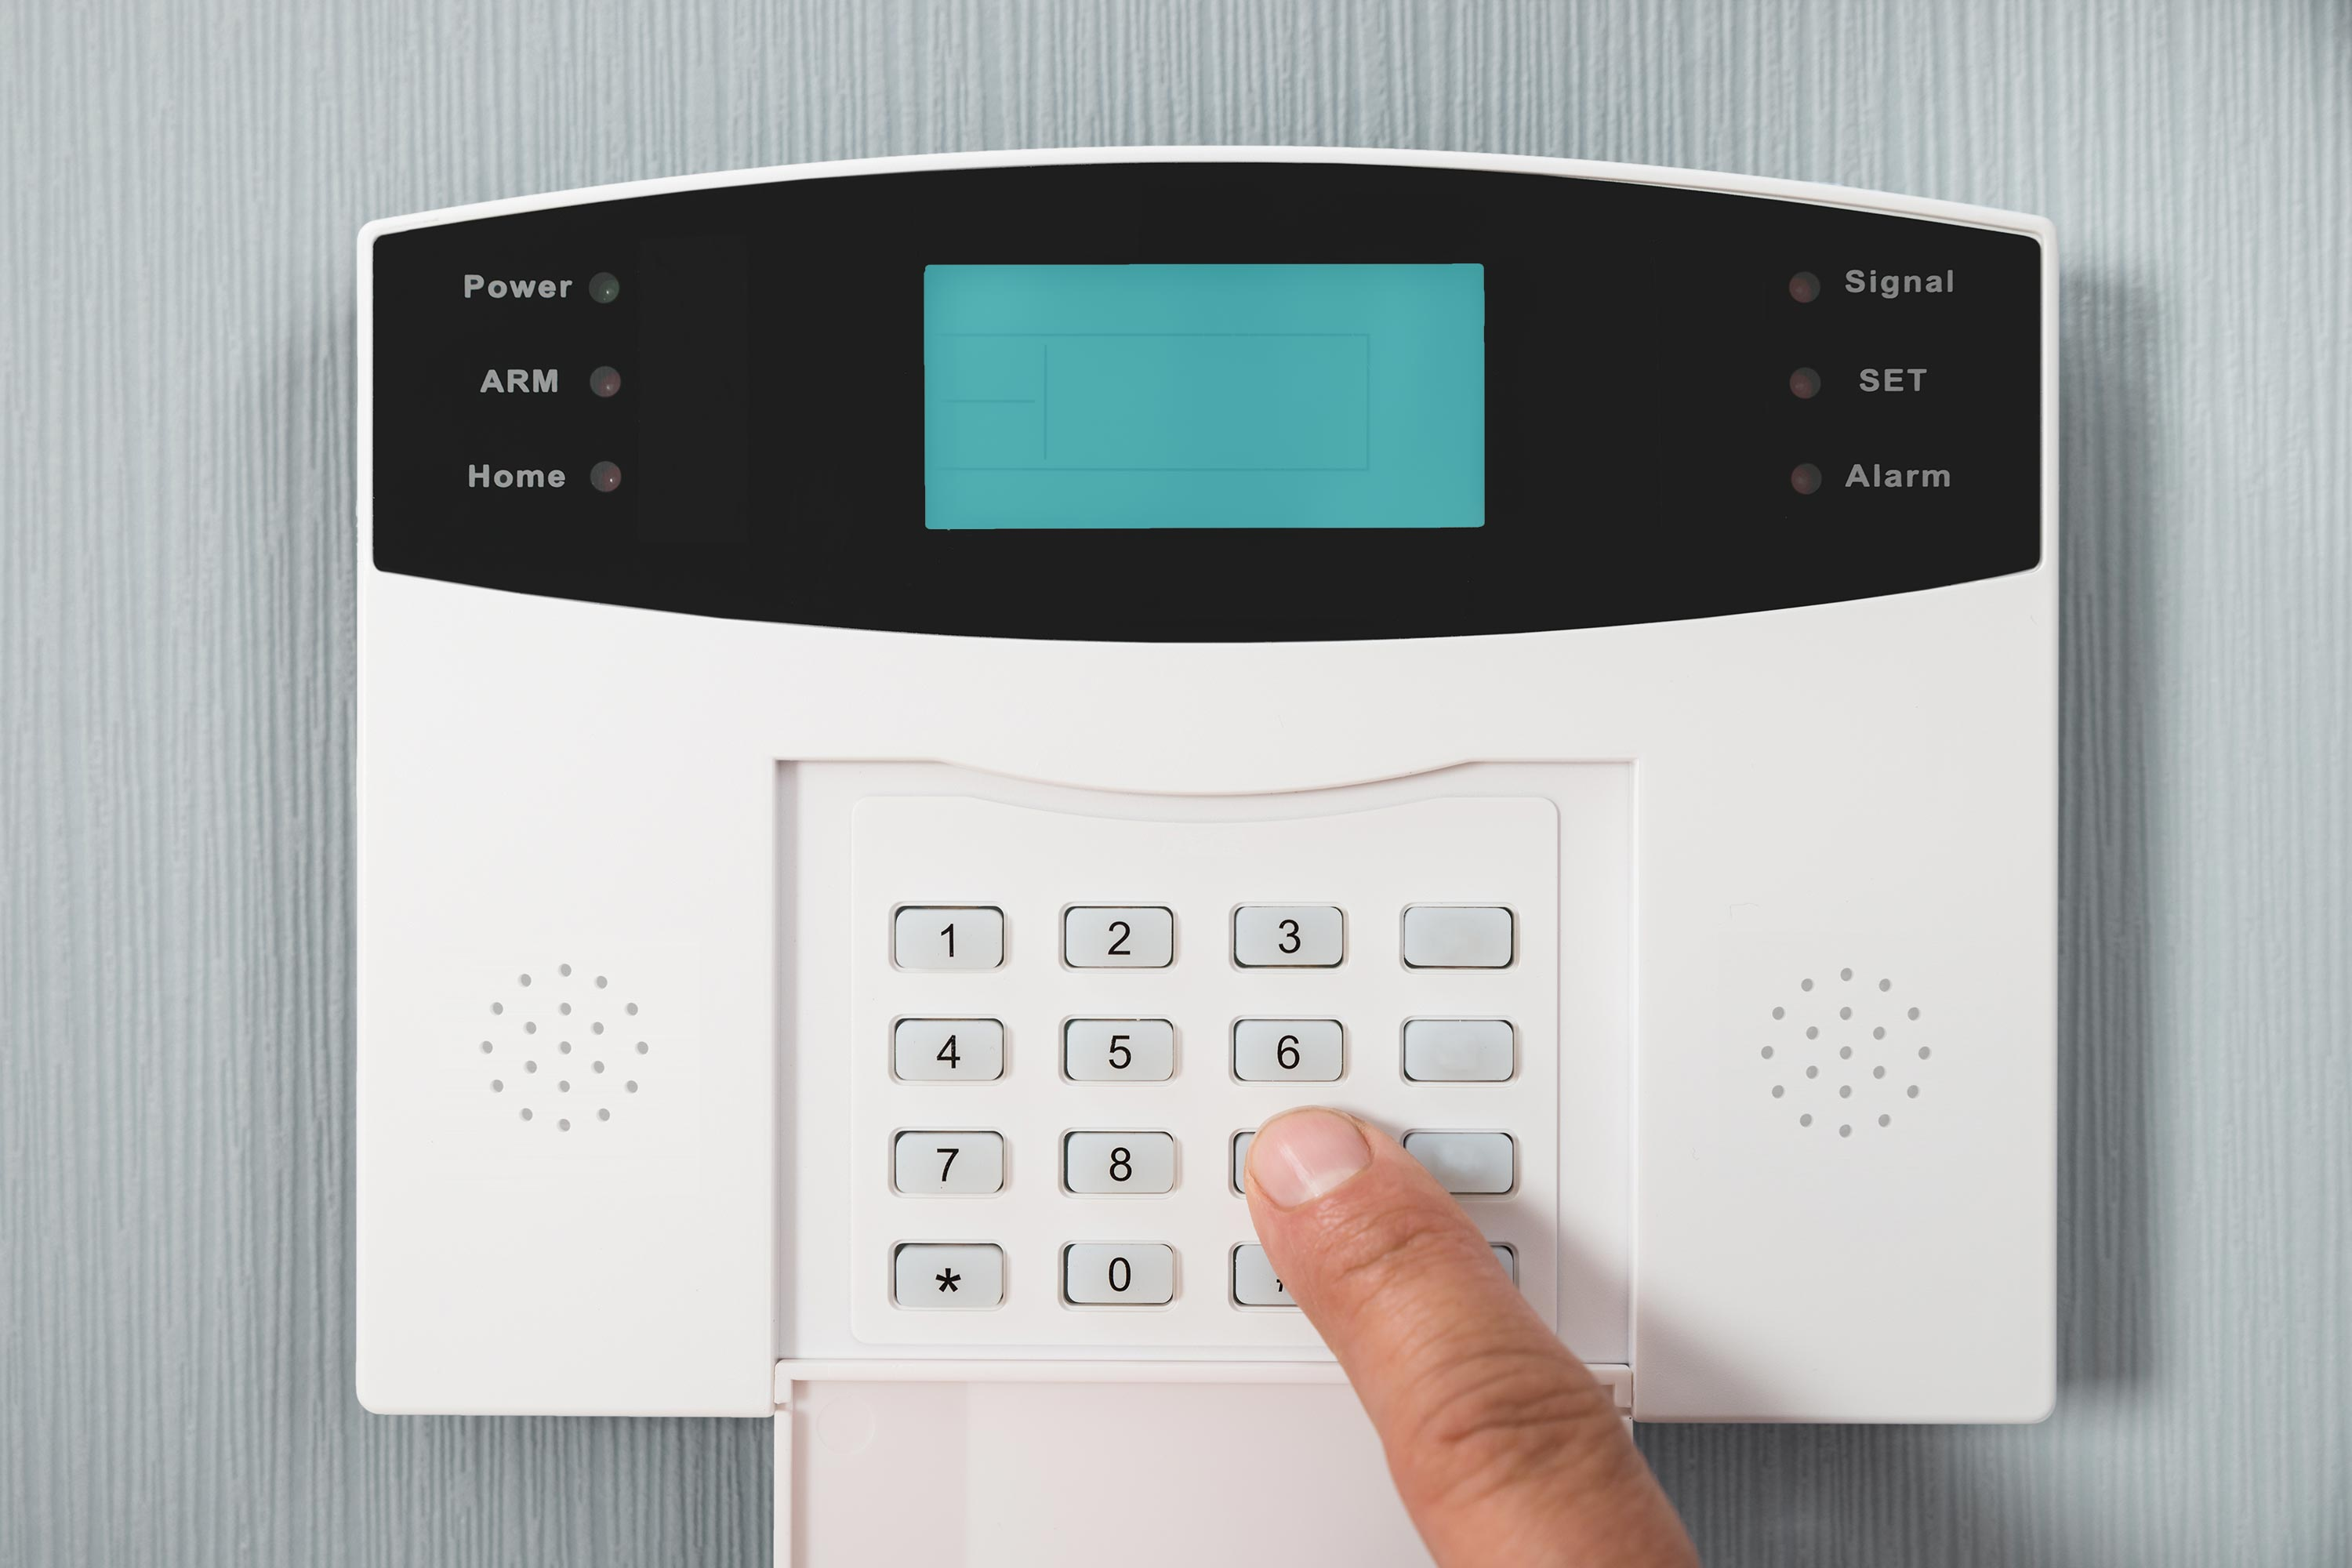 Digital Keypad : bedroom-security-system - designwebi.com